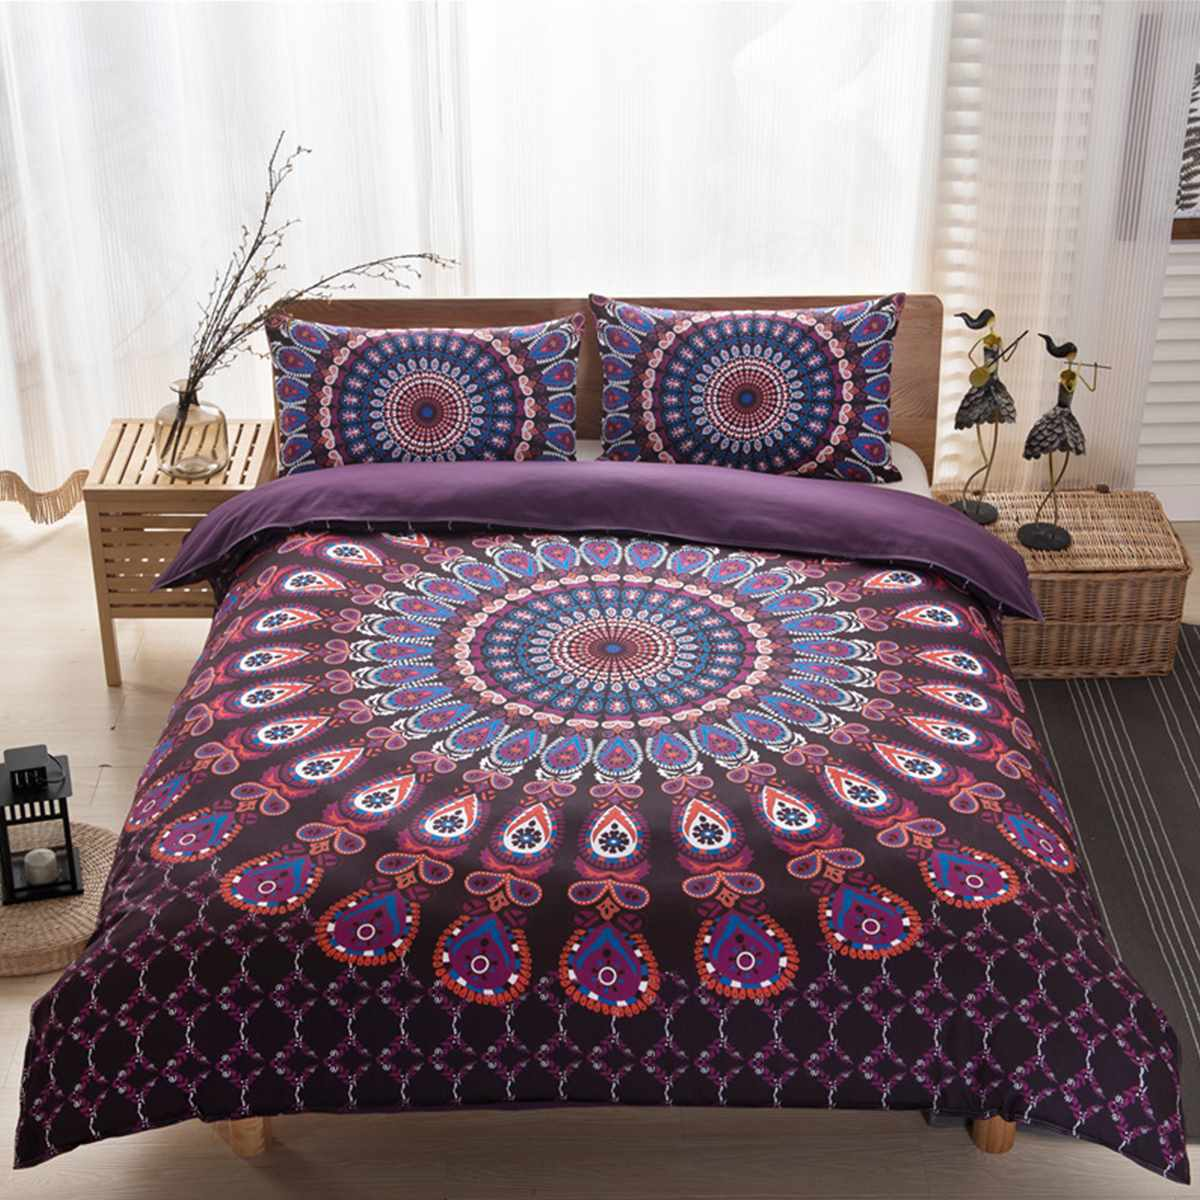 Black and purple bed sheets - Bedding Set Cover Boho Style Indian Bedding Indian Duvet Cover 200x230cm And Two Pillowcases 48x74cm Purple Black